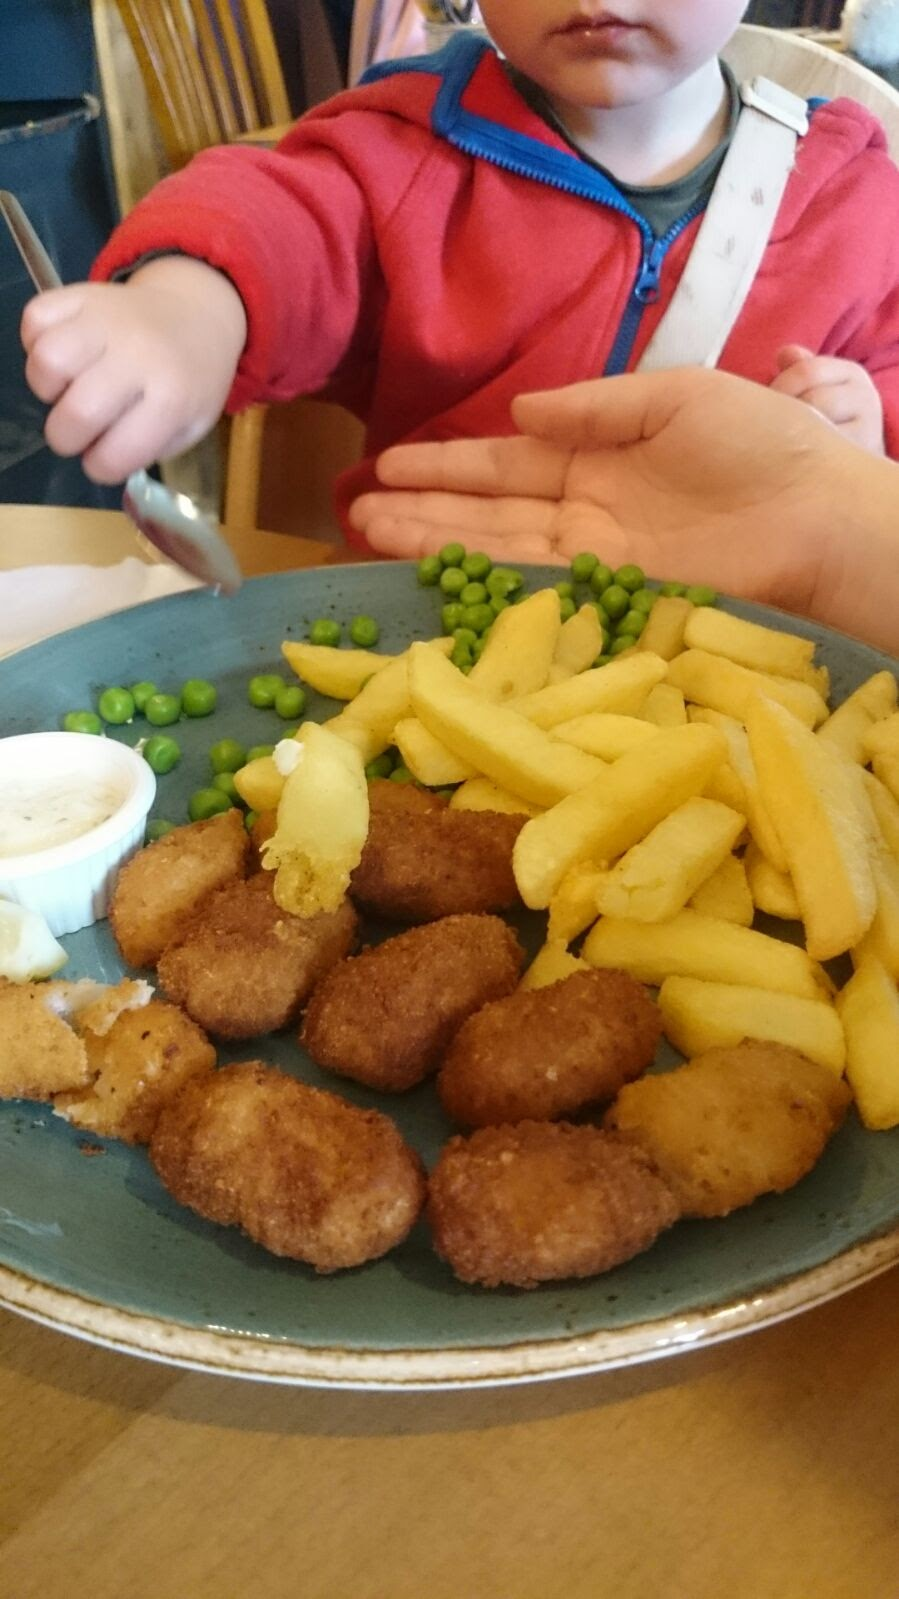 My Scampi & Chips being tucked into buy the boy